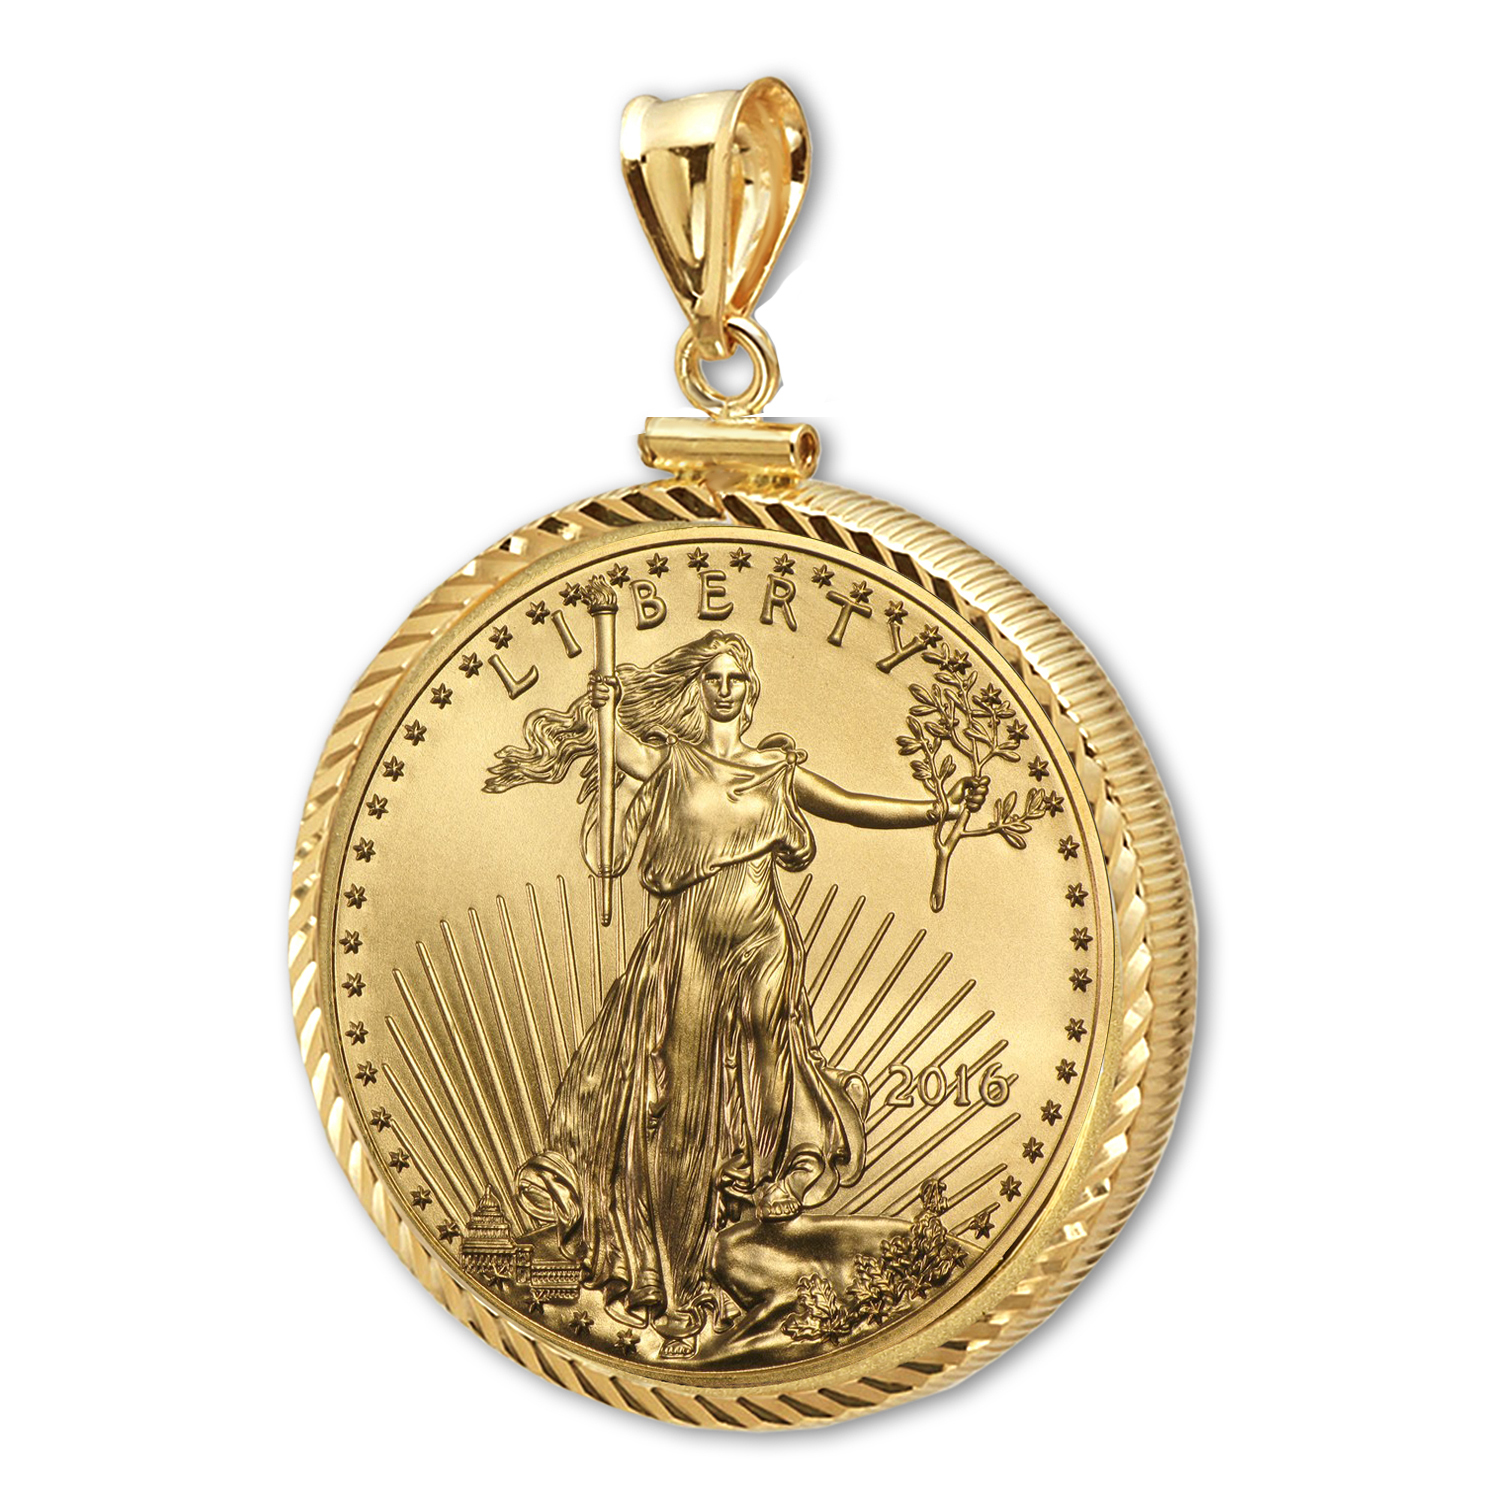 2016 1/2 oz Gold Eagle Pendant (Diamond-ScrewTop Bezel)